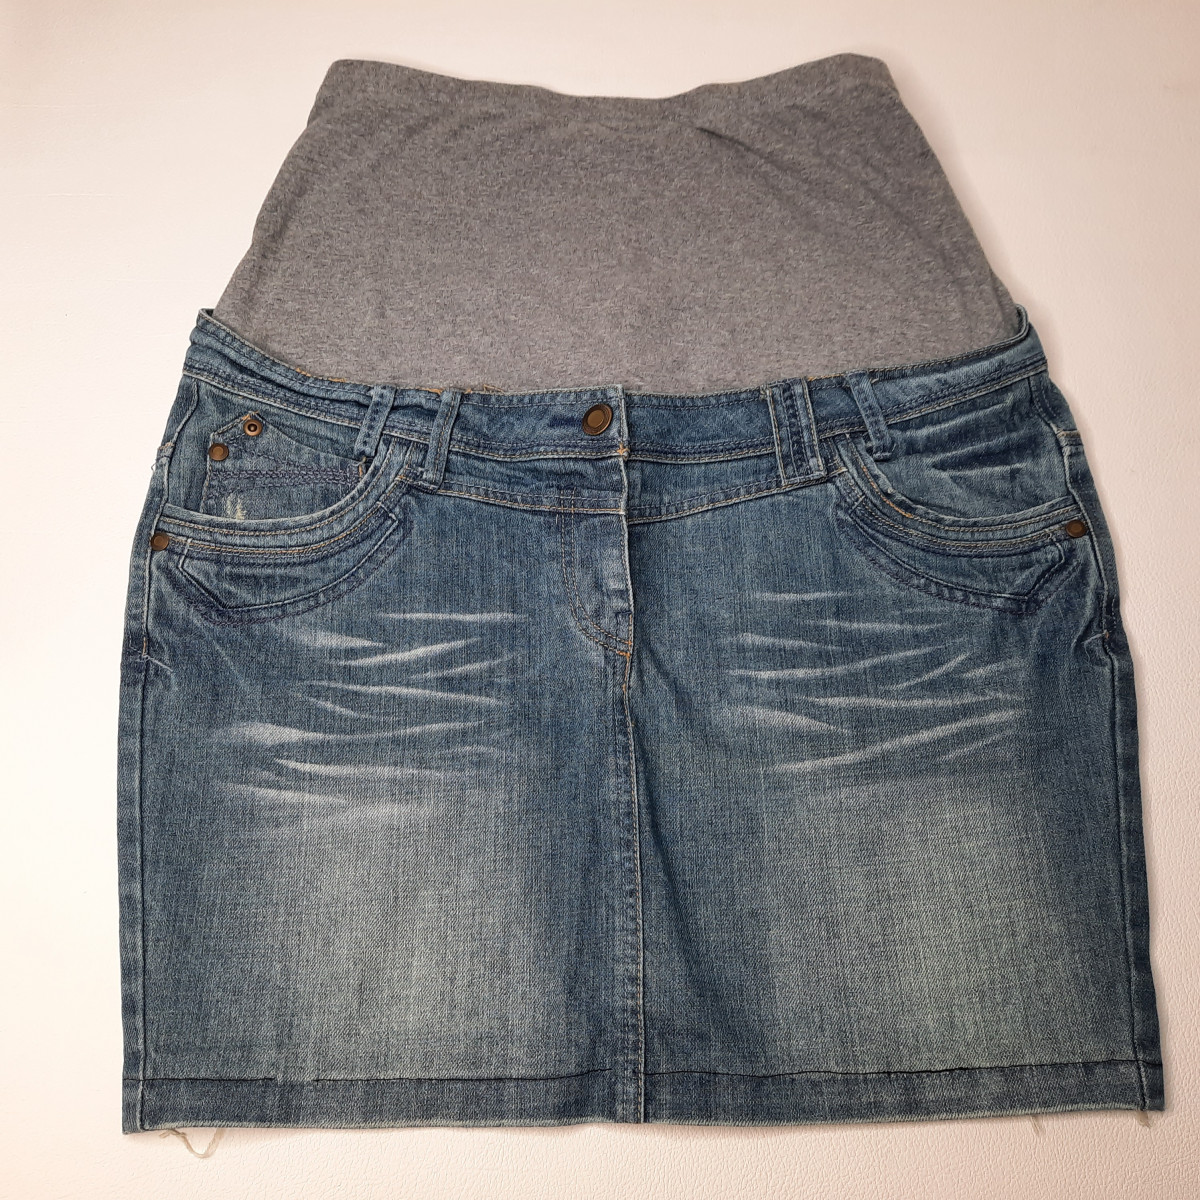 Jupe en jeans Taille 38/40 - photo 6